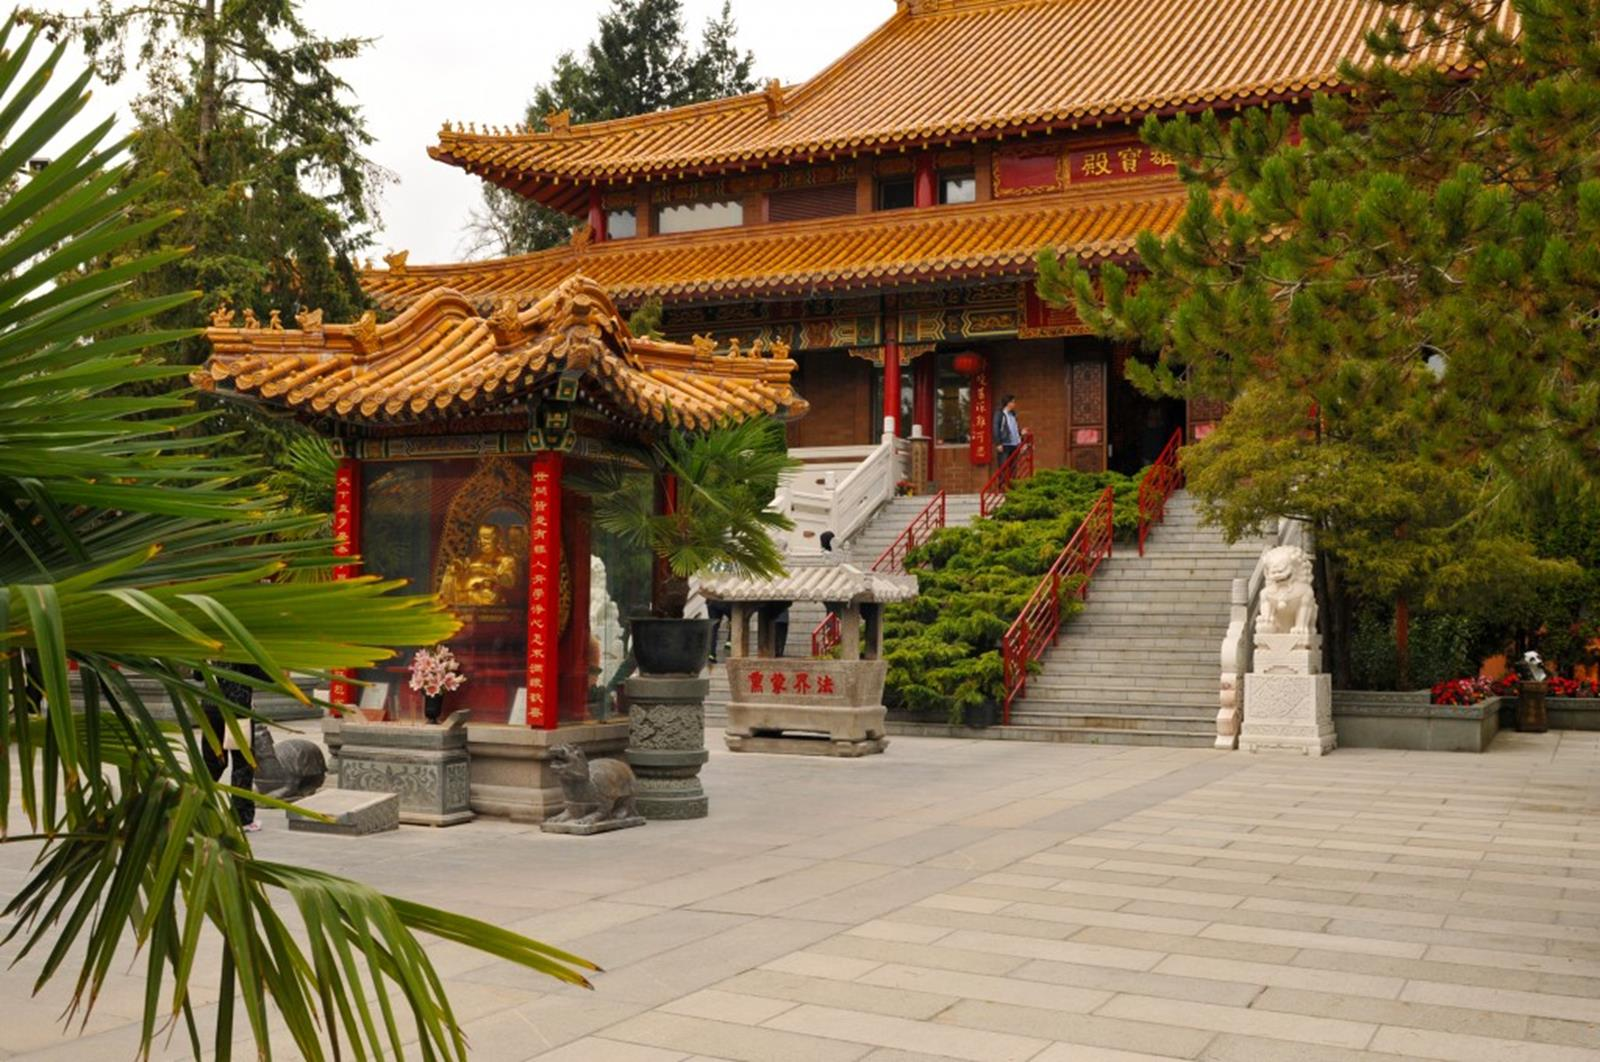 Highway to Heaven – Buddhist Temple, Photo Credit Enviro Foto J.F. Bergeron